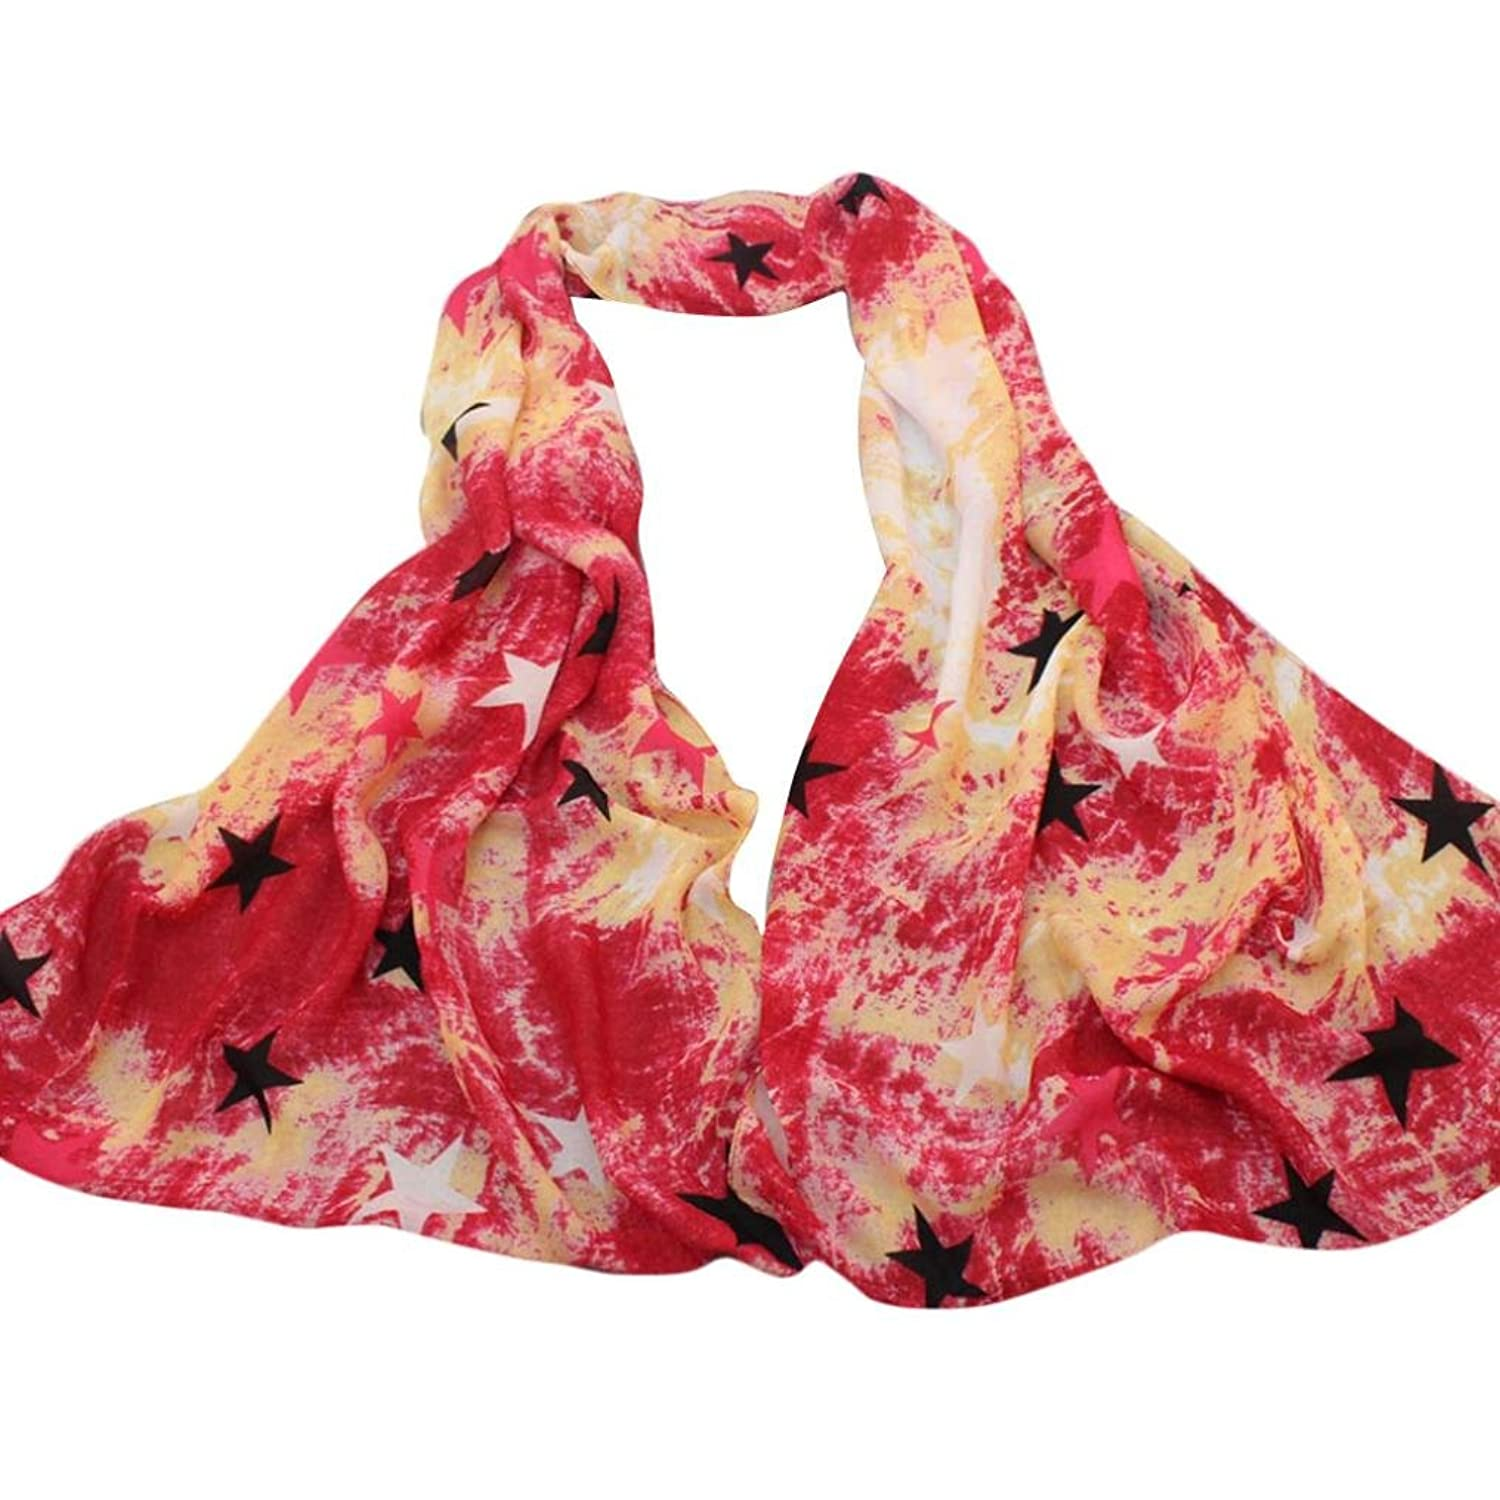 Tuscom@ Fashion Women Girls Warm Long Printing Cotton Wrap Scarf Shawl 锛